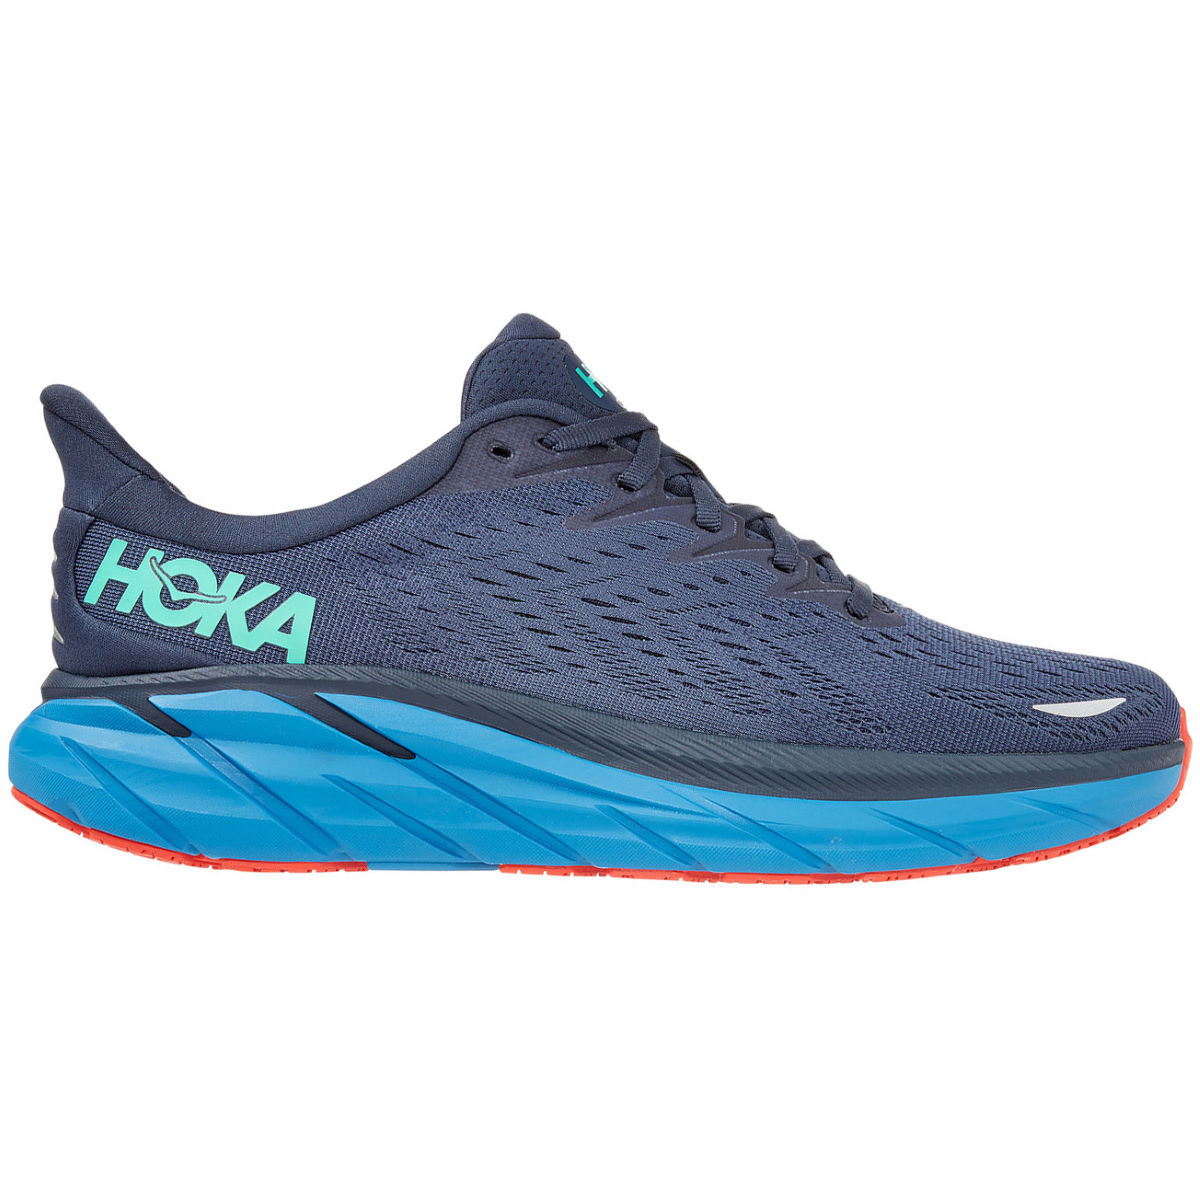 Hoka One One Clifton 8 Wide Running Shoes - UK 7 | Running Shoes